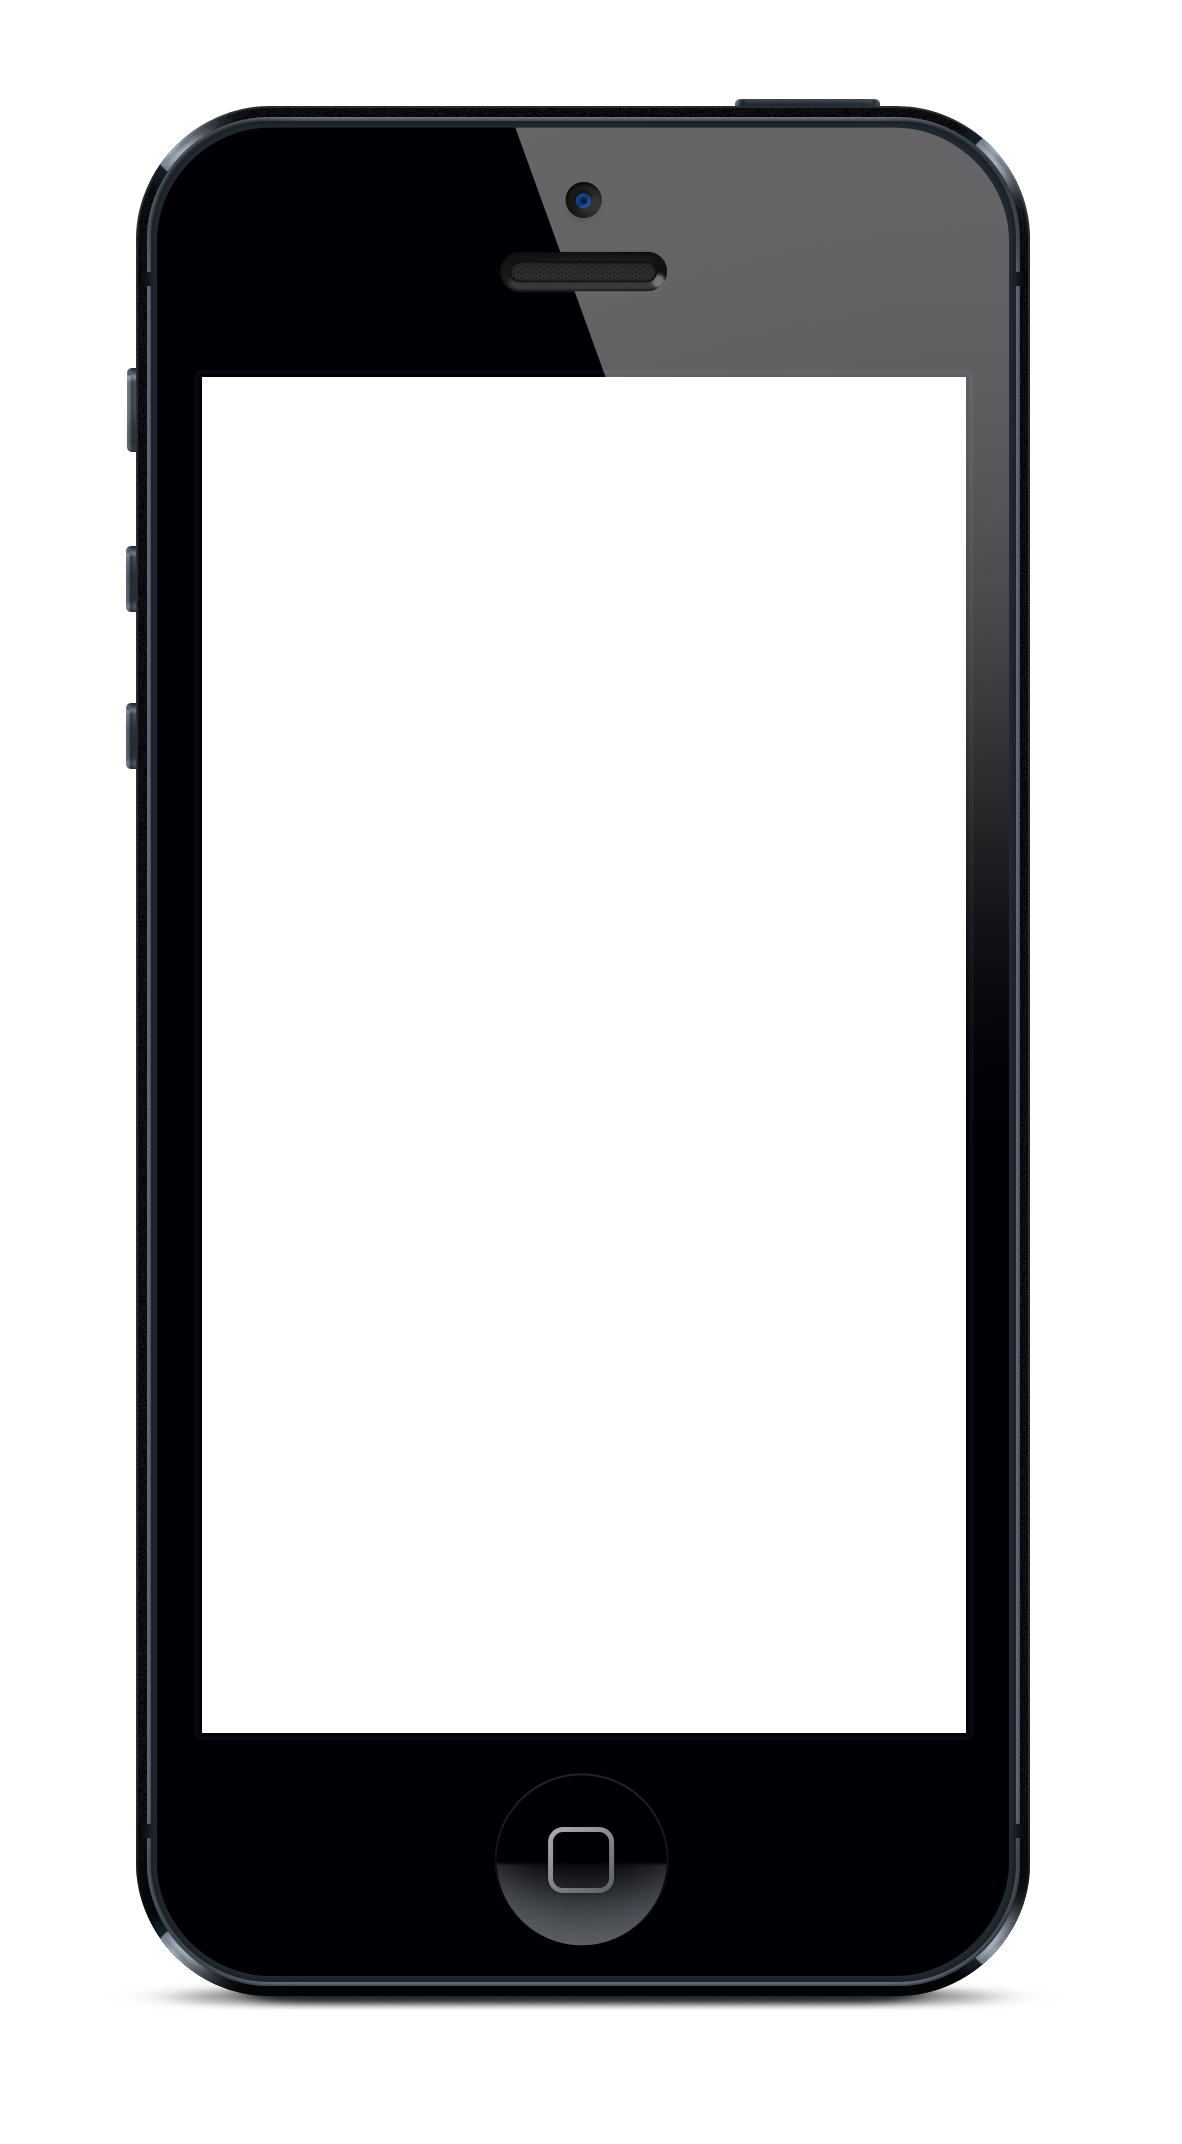 Apple iphone transparent PNG image - Iphone PNG